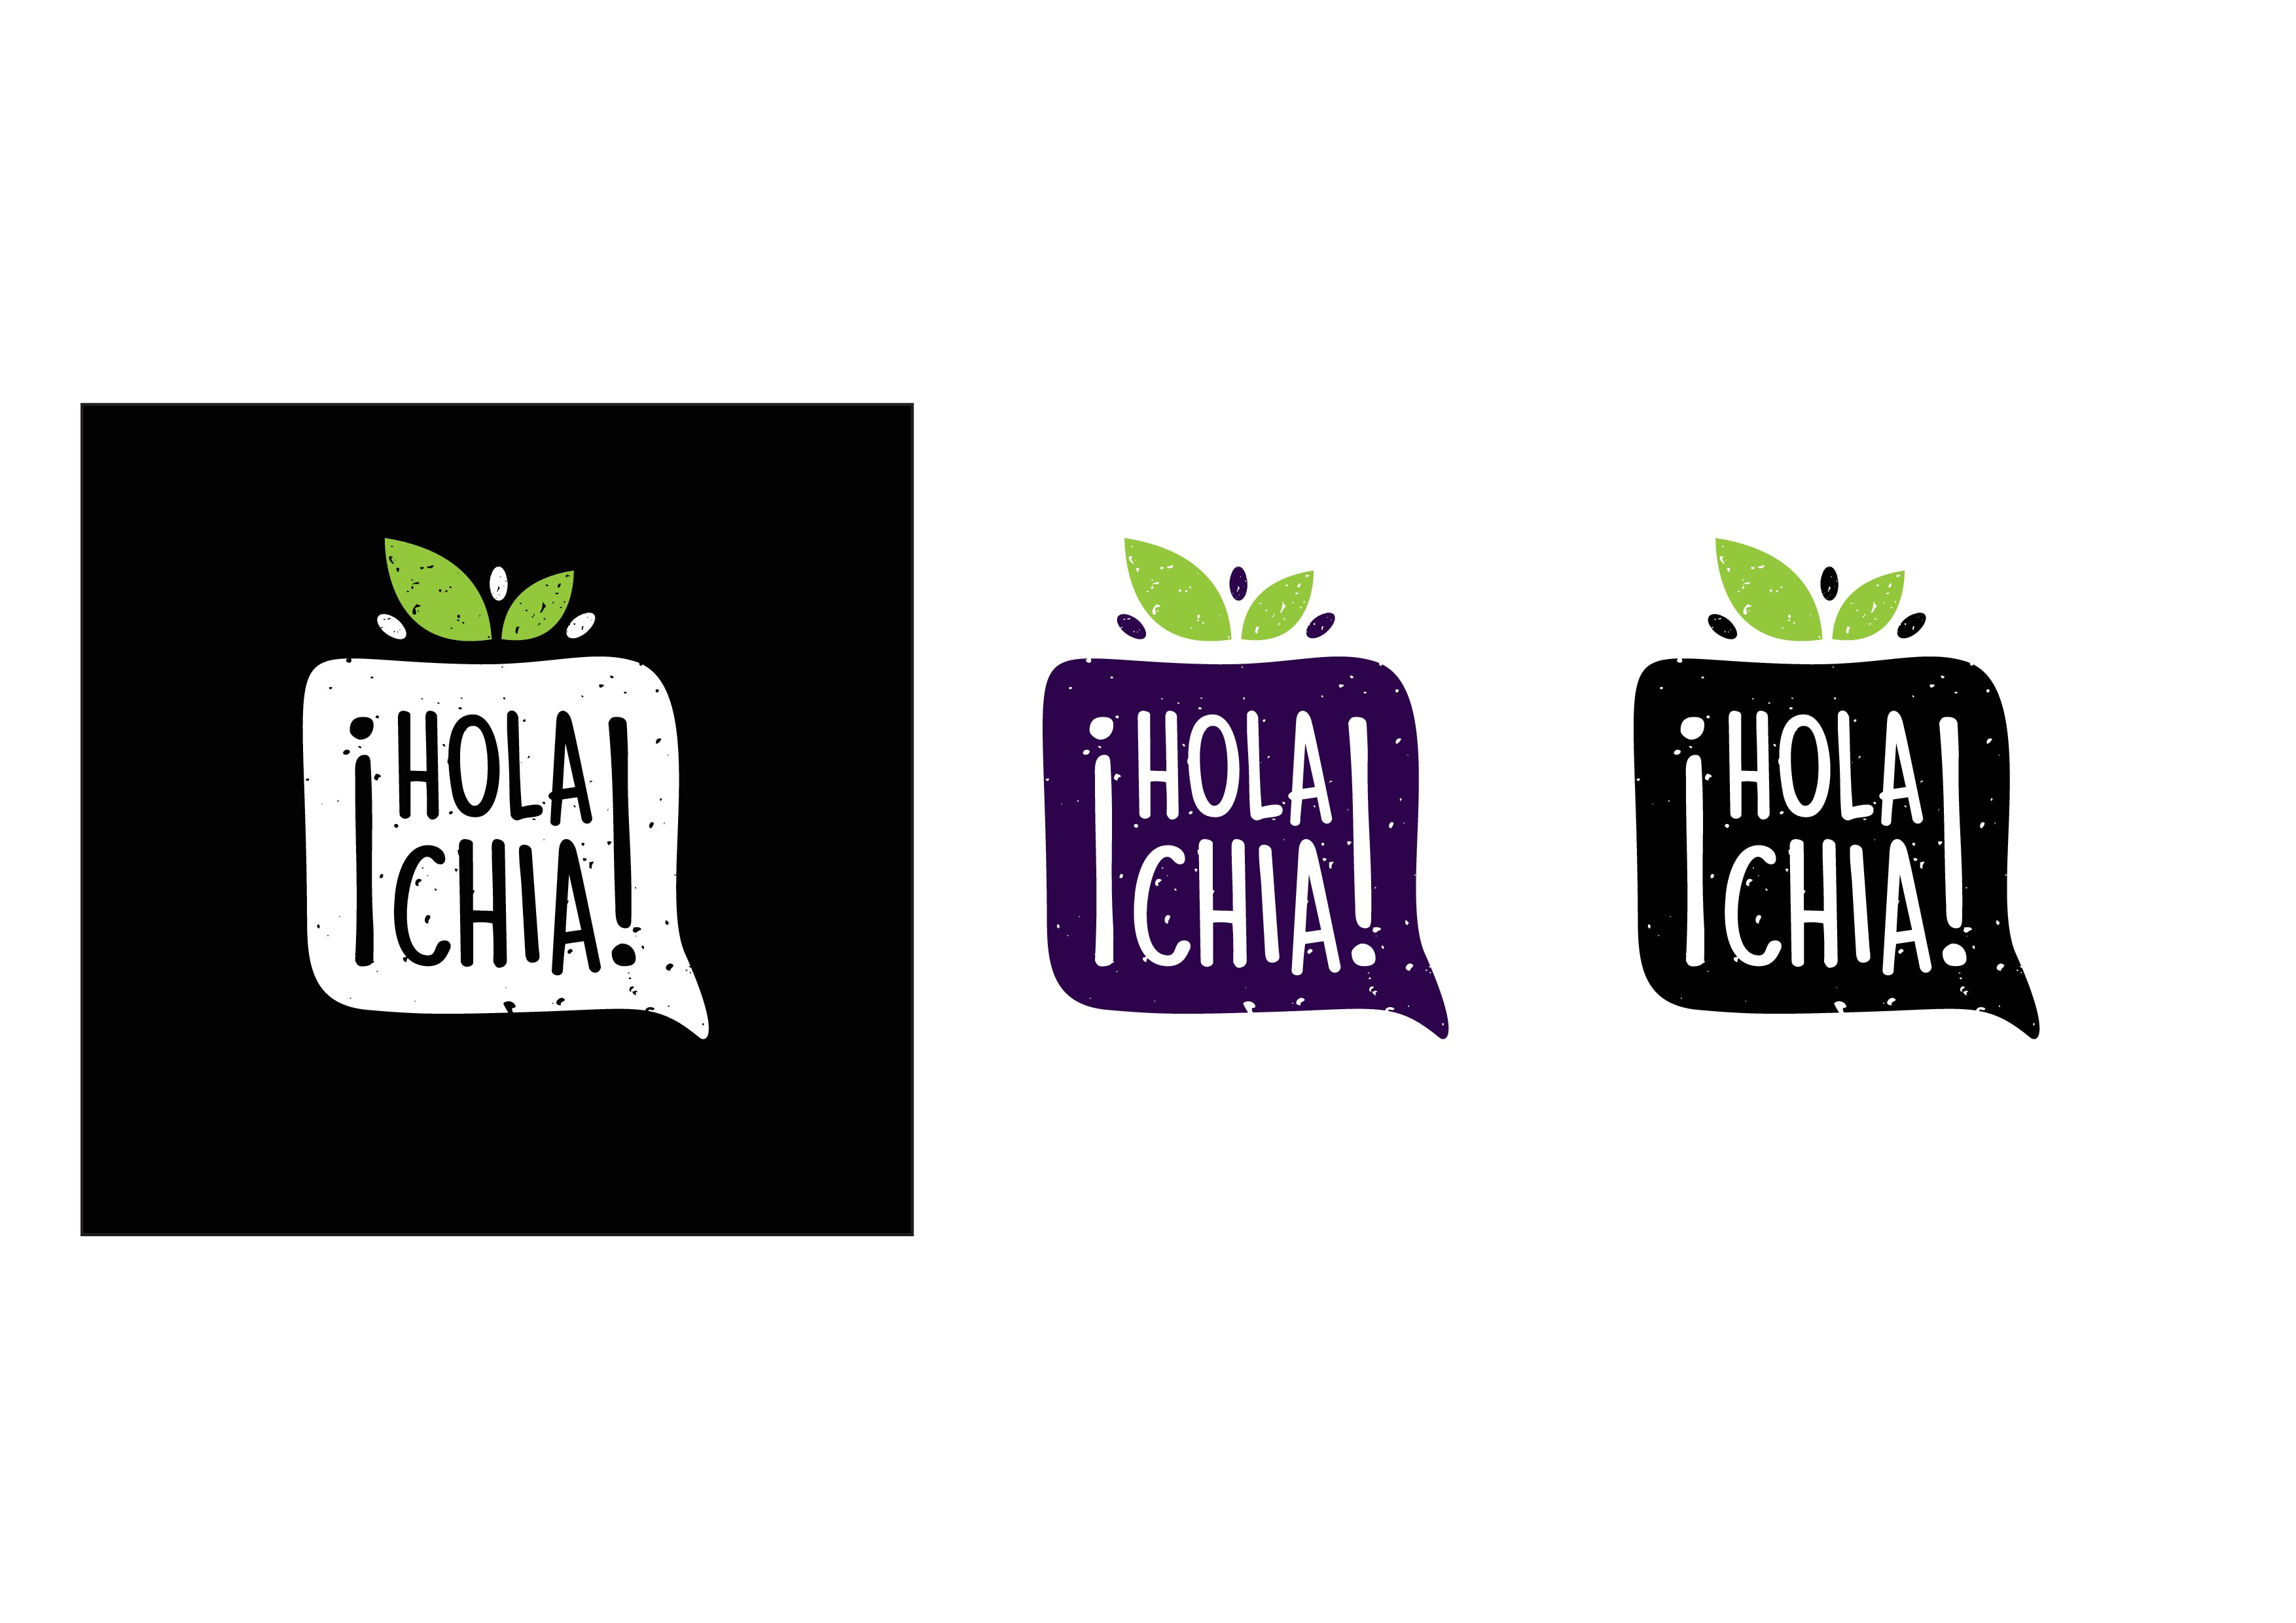 Create an eye-catching logo for a young company that makes super healthy vegan drinks with Chia.